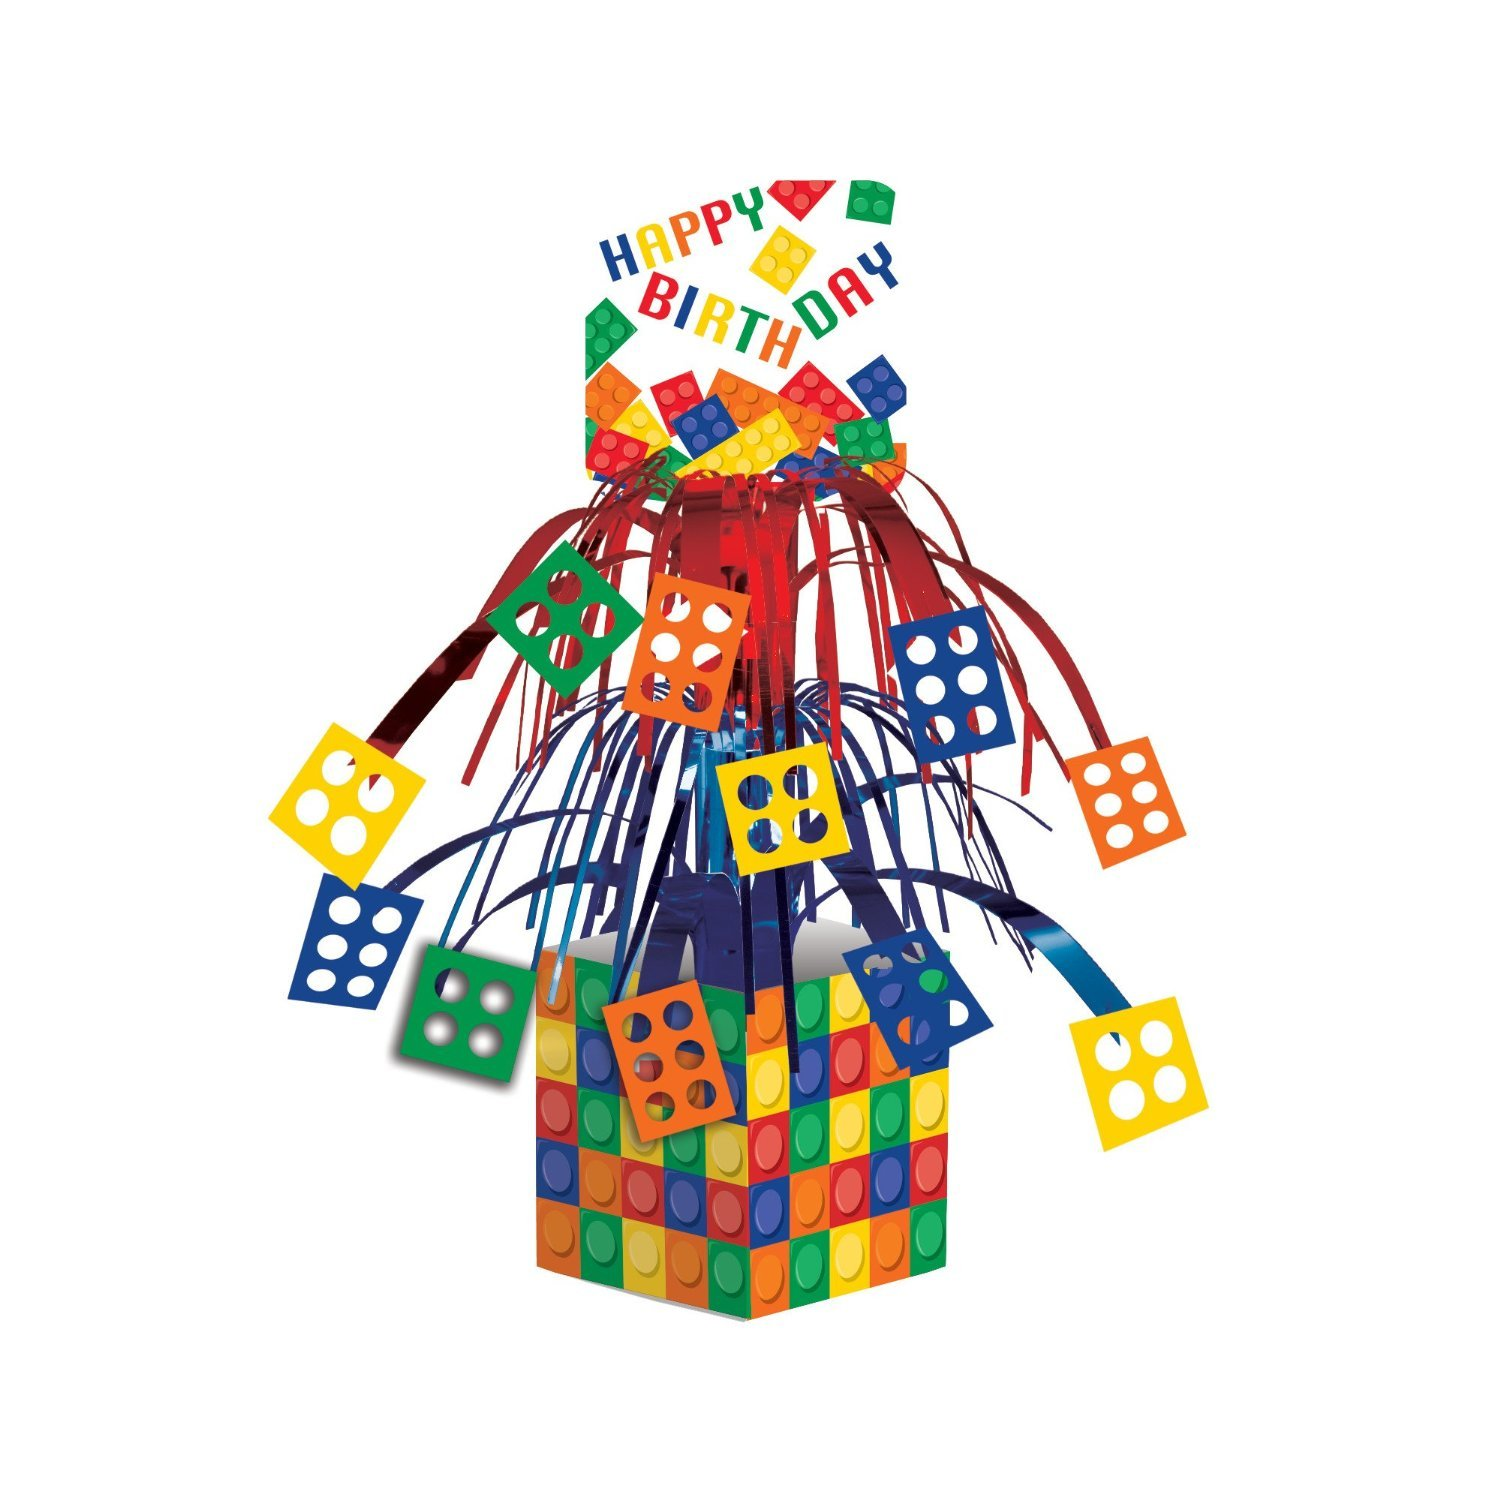 Block Party Decorations Pack Centerpiece Image 2